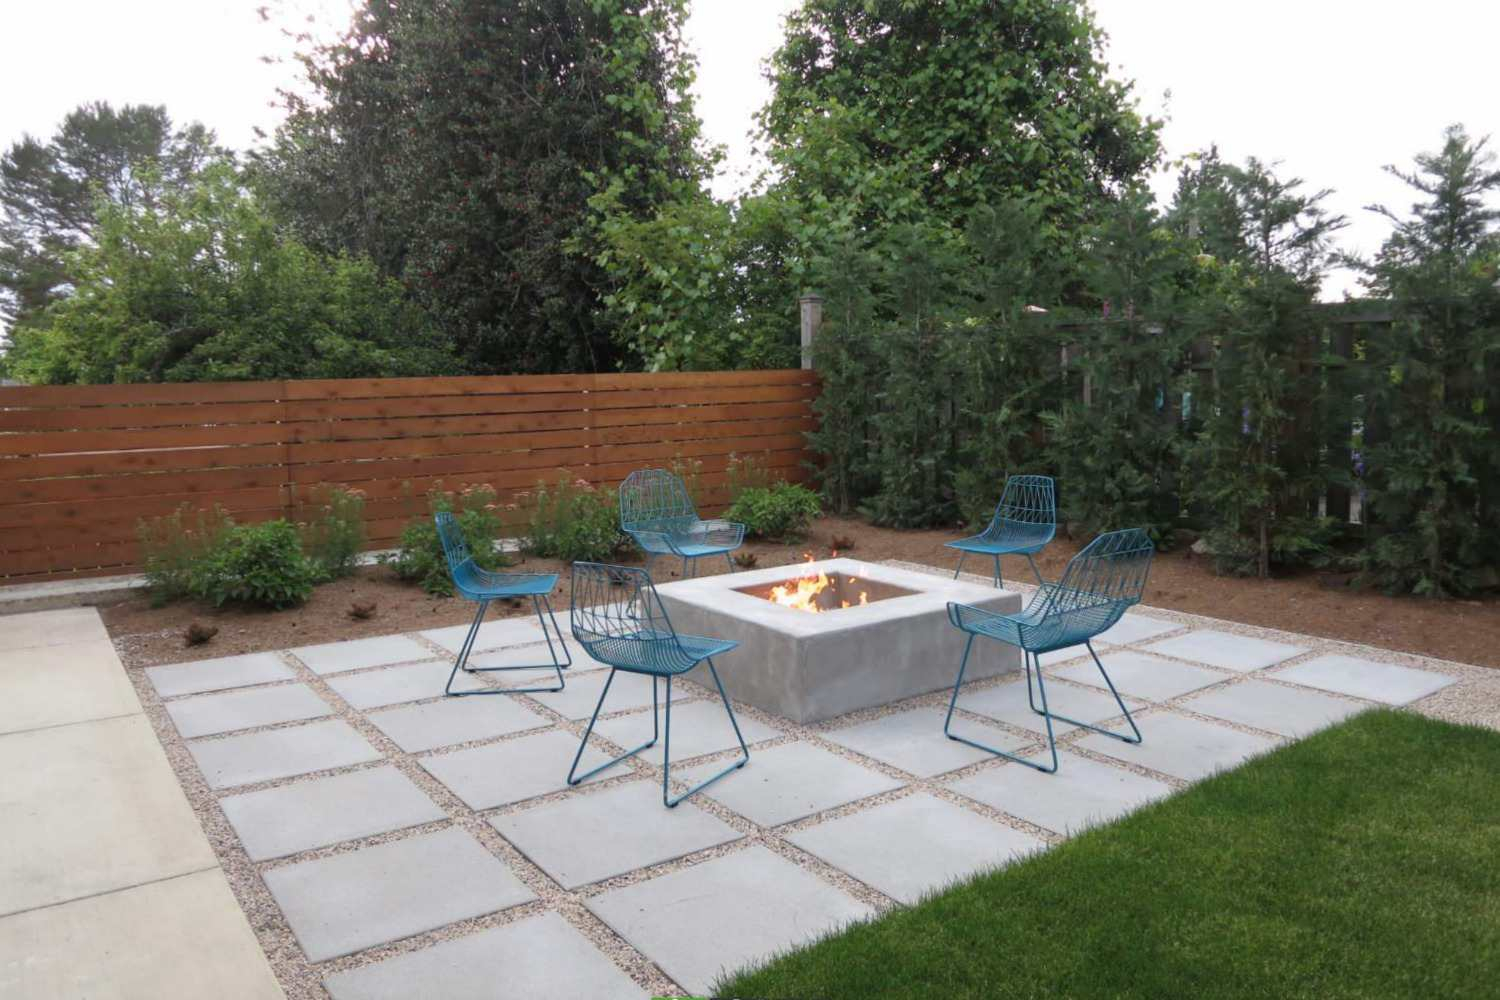 15 Beautiful Concrete Patio Ideas And Designs in 12 Genius Ways How to Make Backyard Cement Ideas